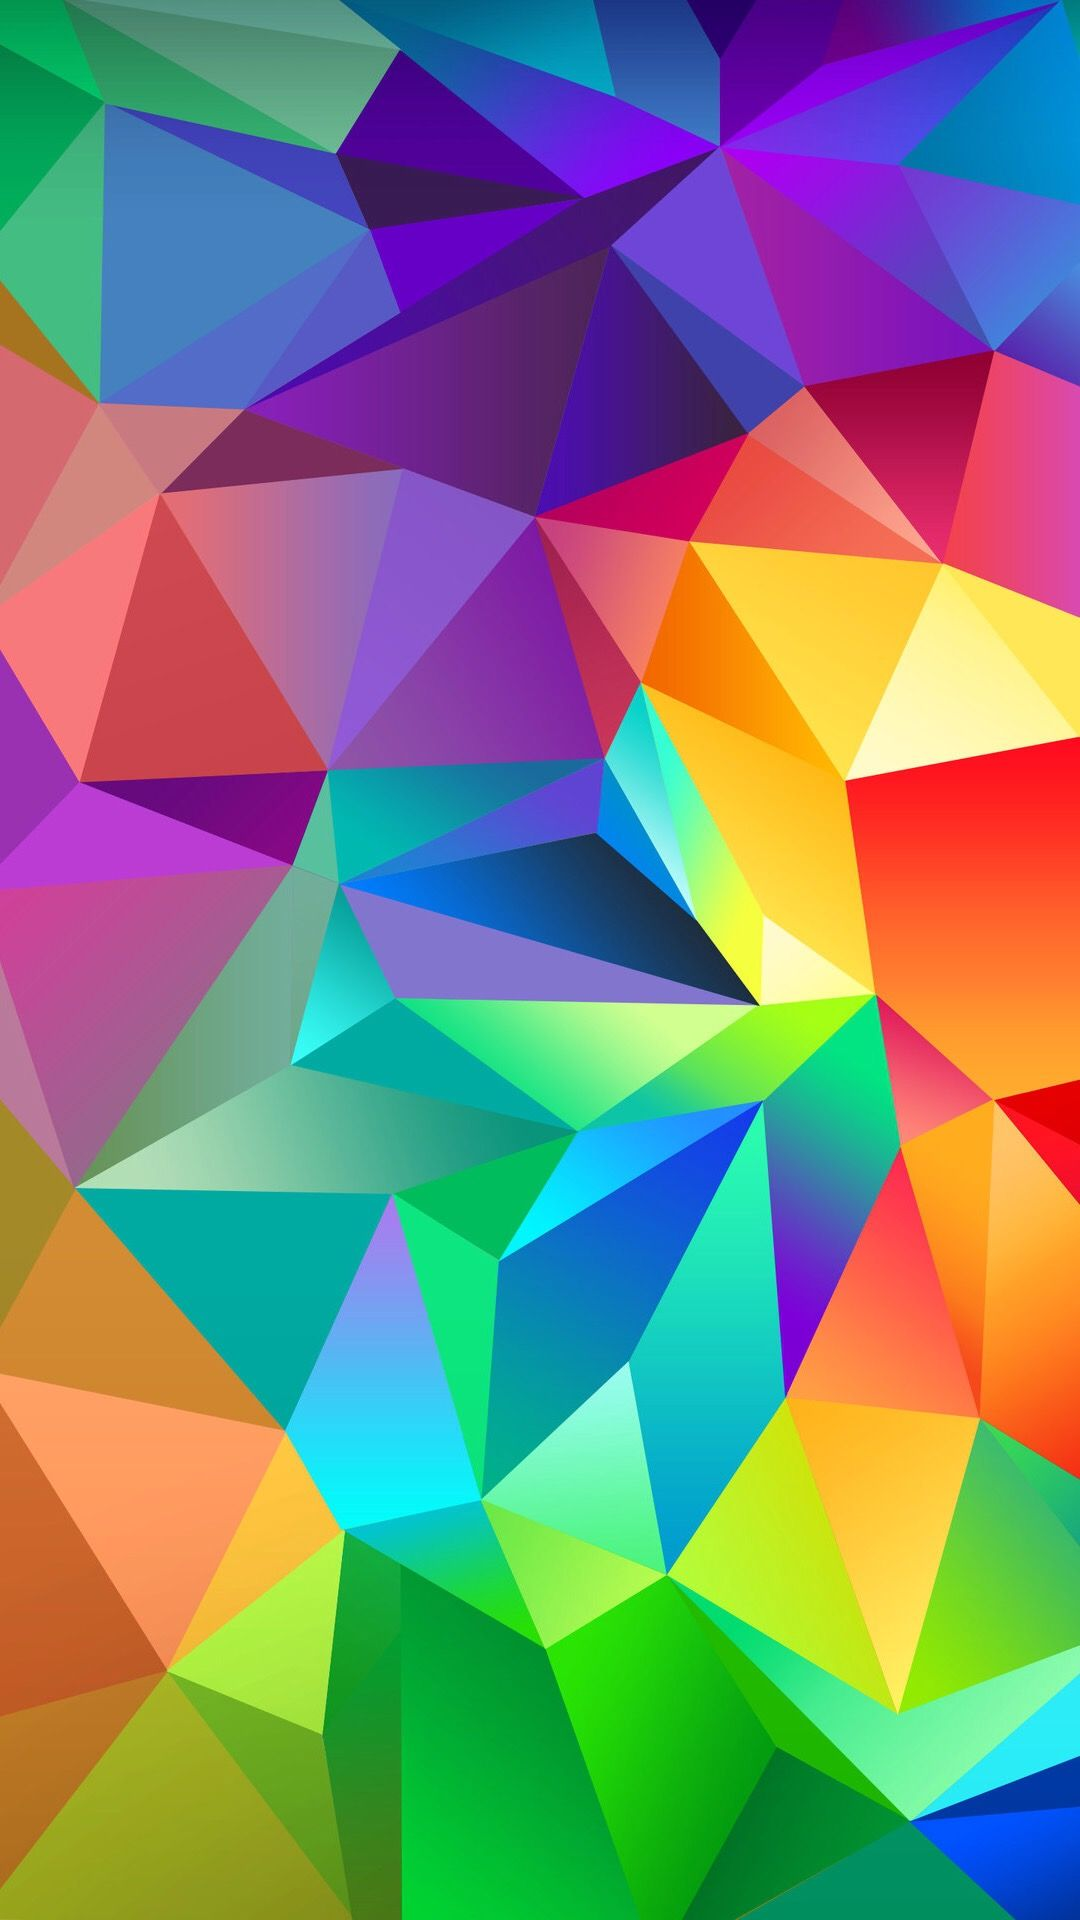 Free Colorful Geometric Wallpaper: Abstract Iphone Wallpaper